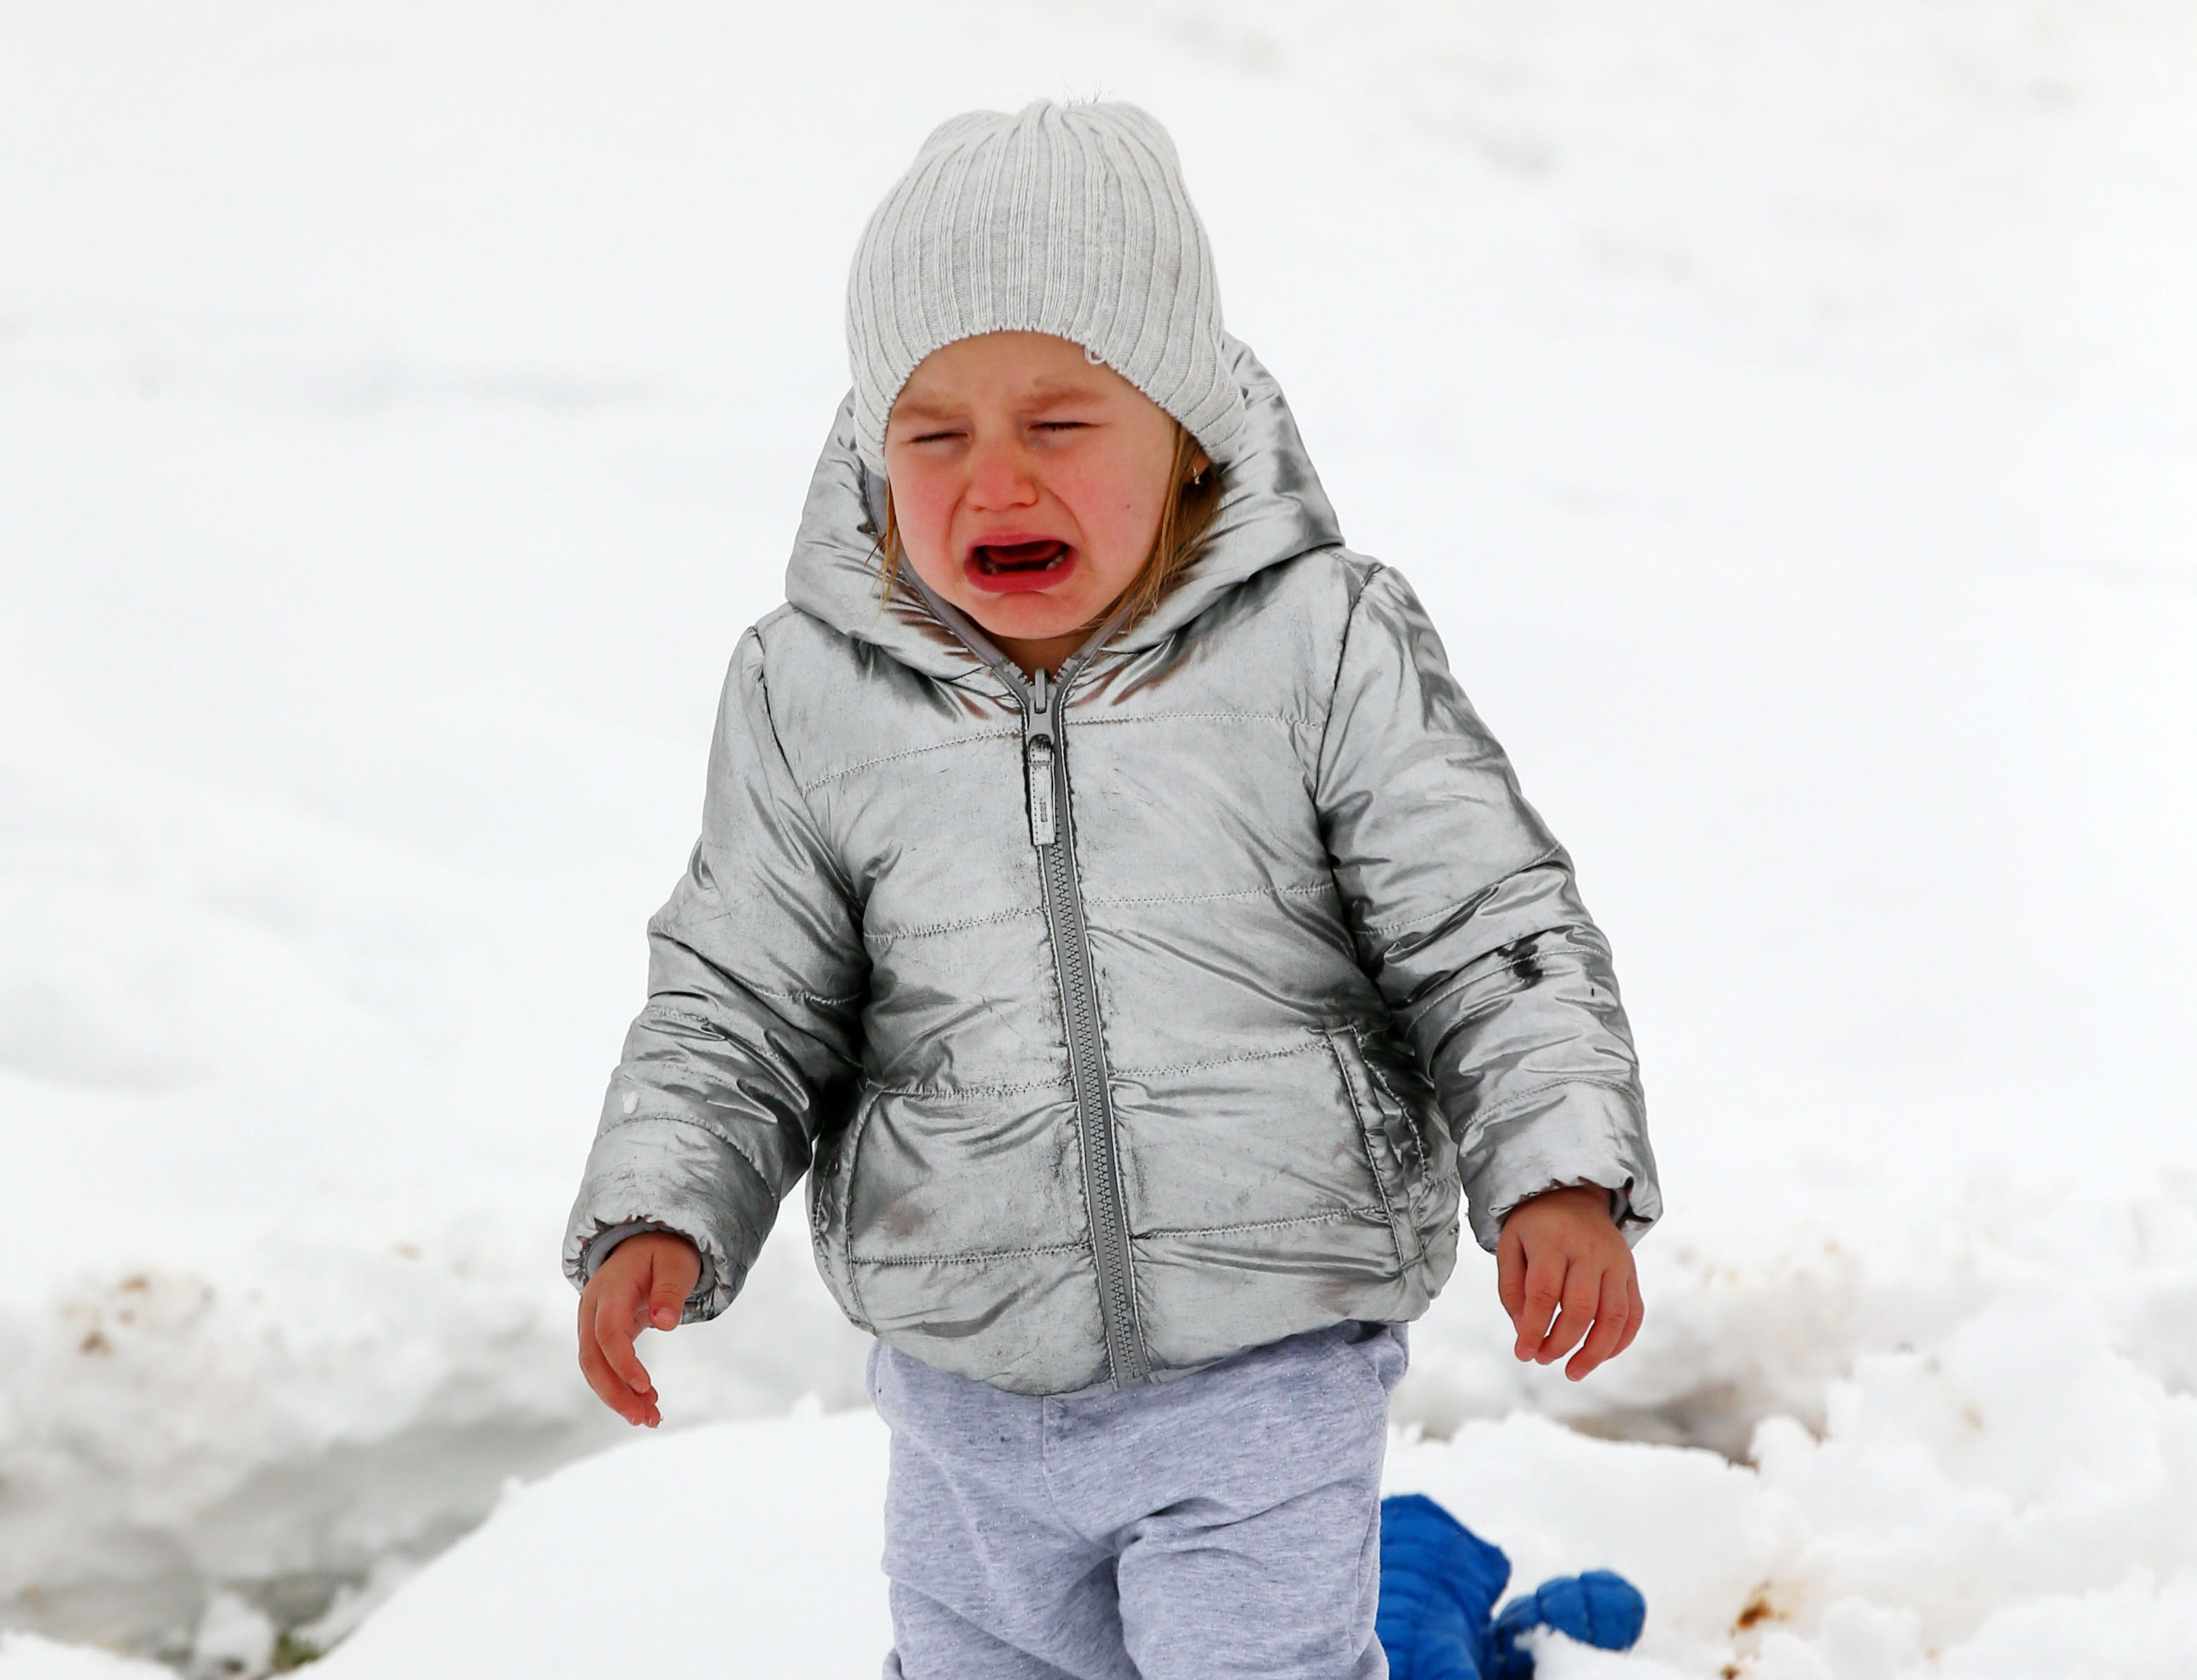 Georgia Lentine, age 2 of Phoenix cries during her first experience with snow after a winter storm brought six inches of snow on Feb. 22, 2019 in Scottsdale, Ariz.